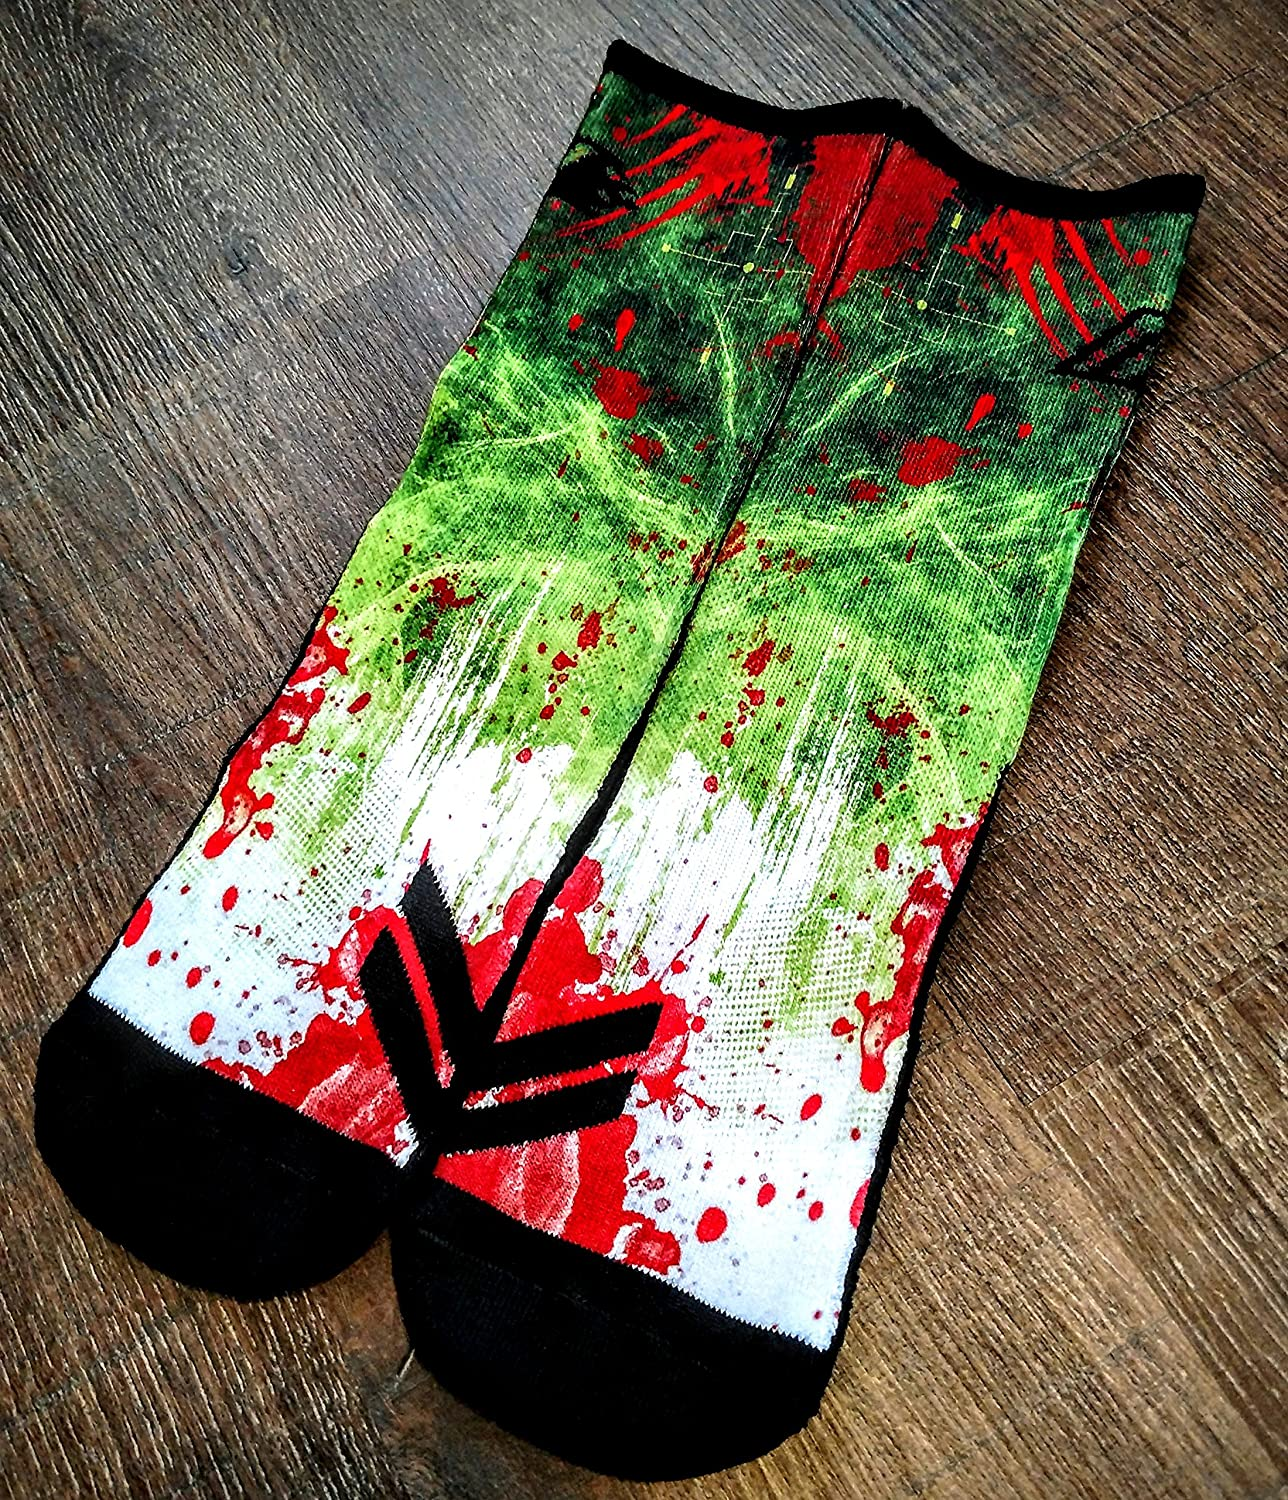 Sock Motto Funny Crazy Colorful Custom Basketball Crew Athletic Socks ZOMBIE DESTROYER